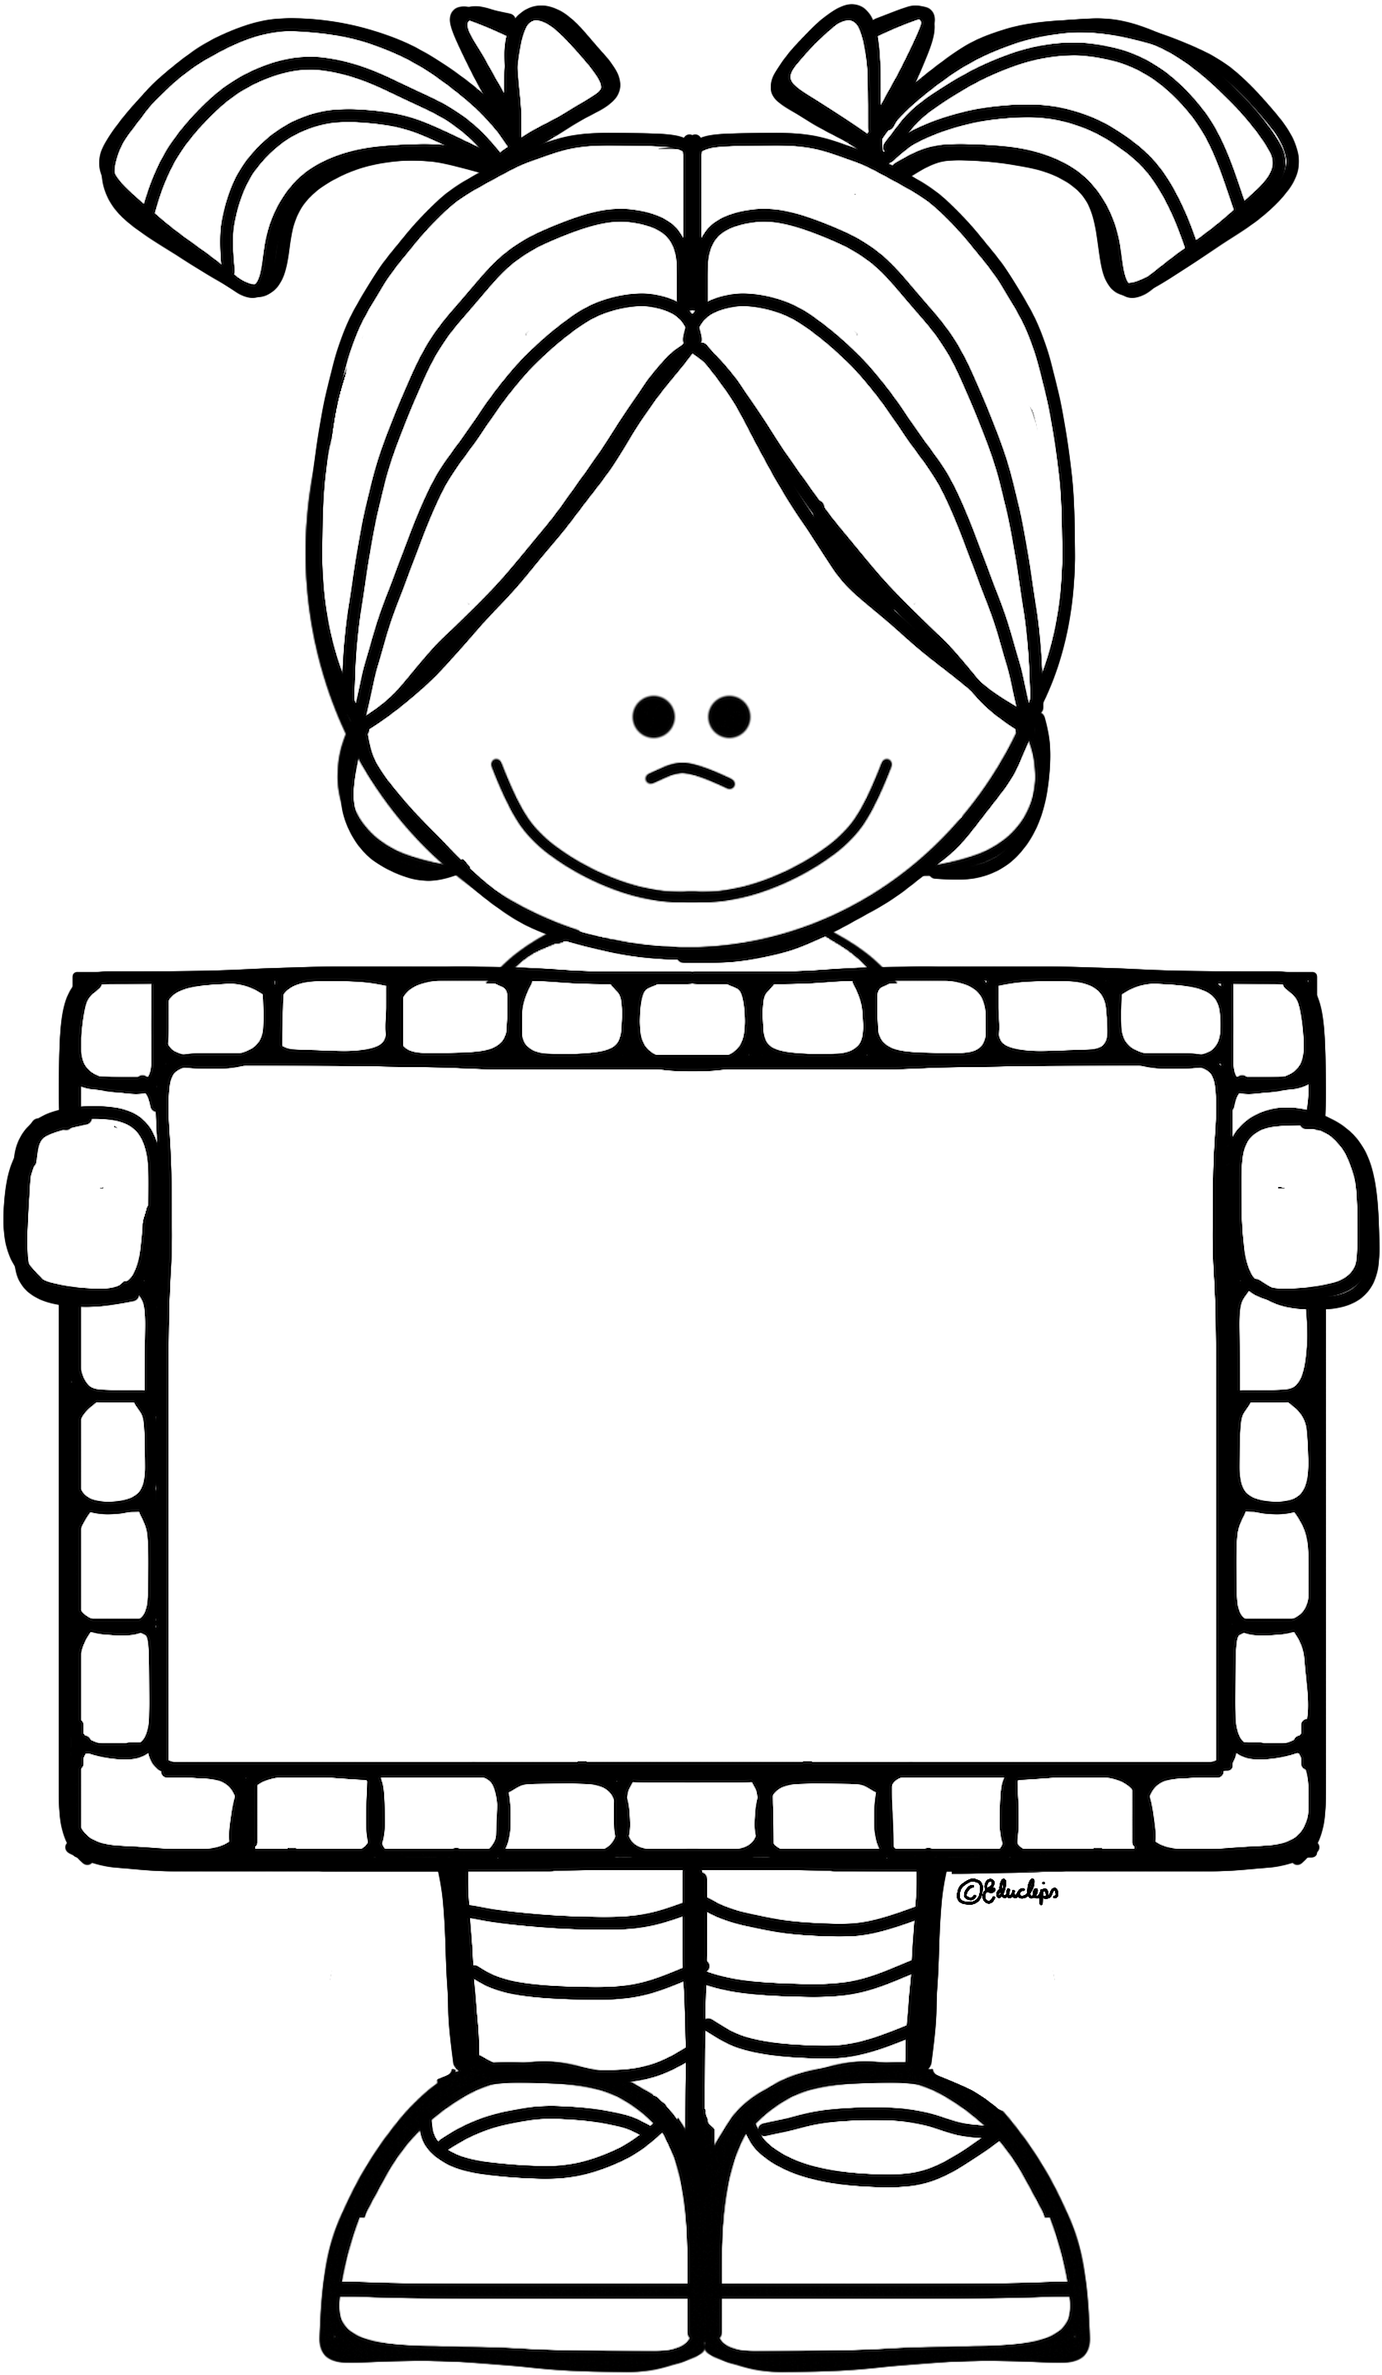 Free Math Clipart Black And White, Download Free Clip Art.